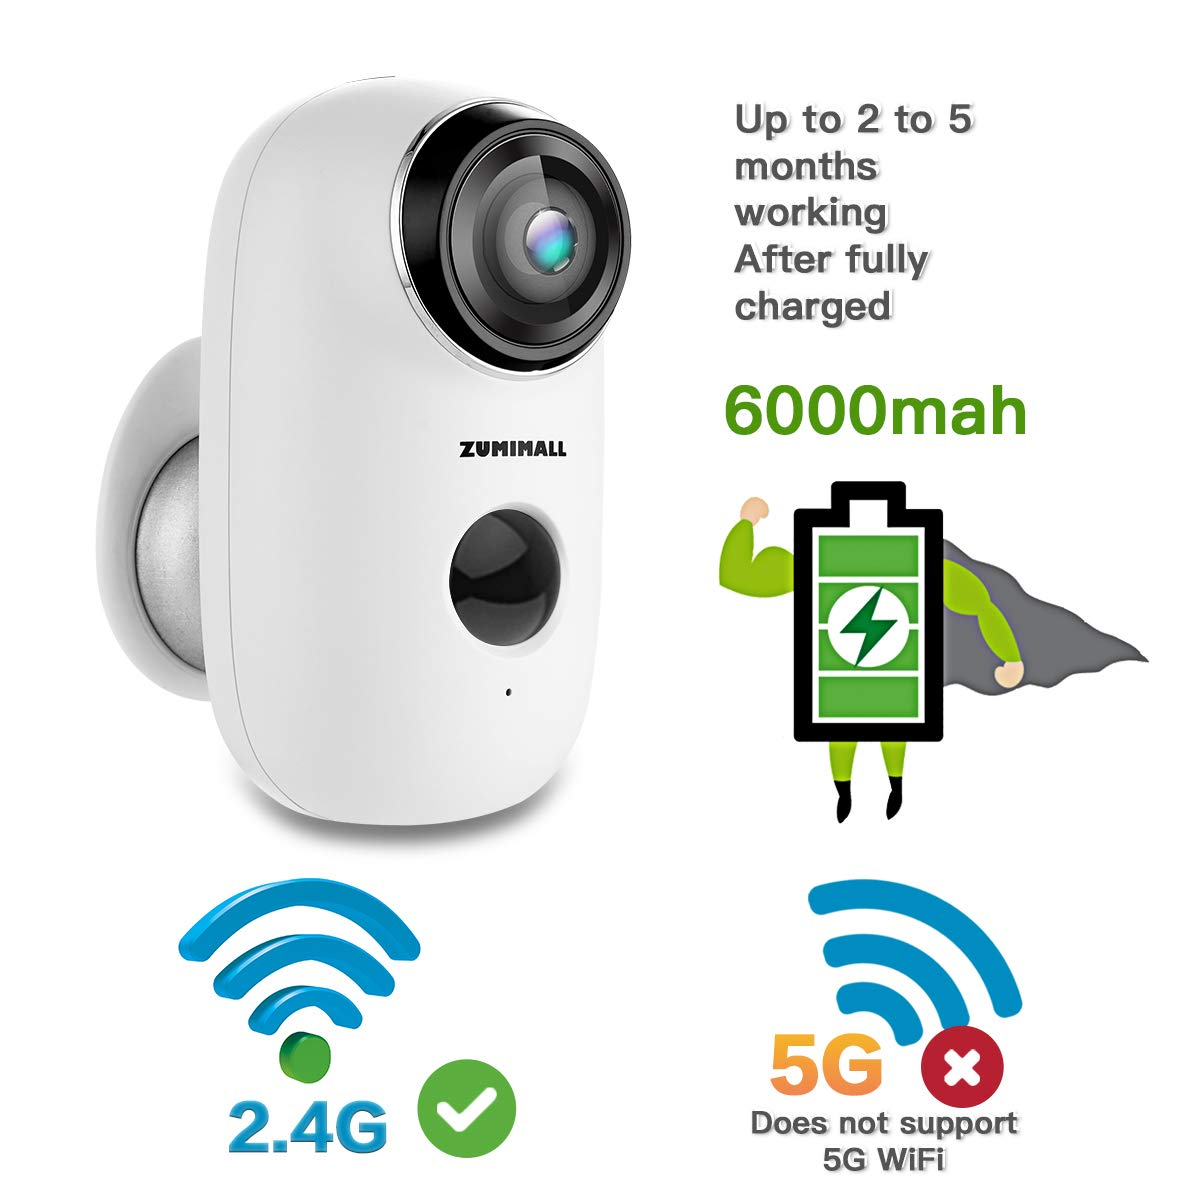 Wireless Rechargeable Battery Powered Wifi Camera Home Security Camera Night Vision Indoor Outdoor 1080p Video With Motion Detection 2 Way Audio Waterproof Compatible With Cloud Storage Sd Slot Amazon Sg Home Improvement